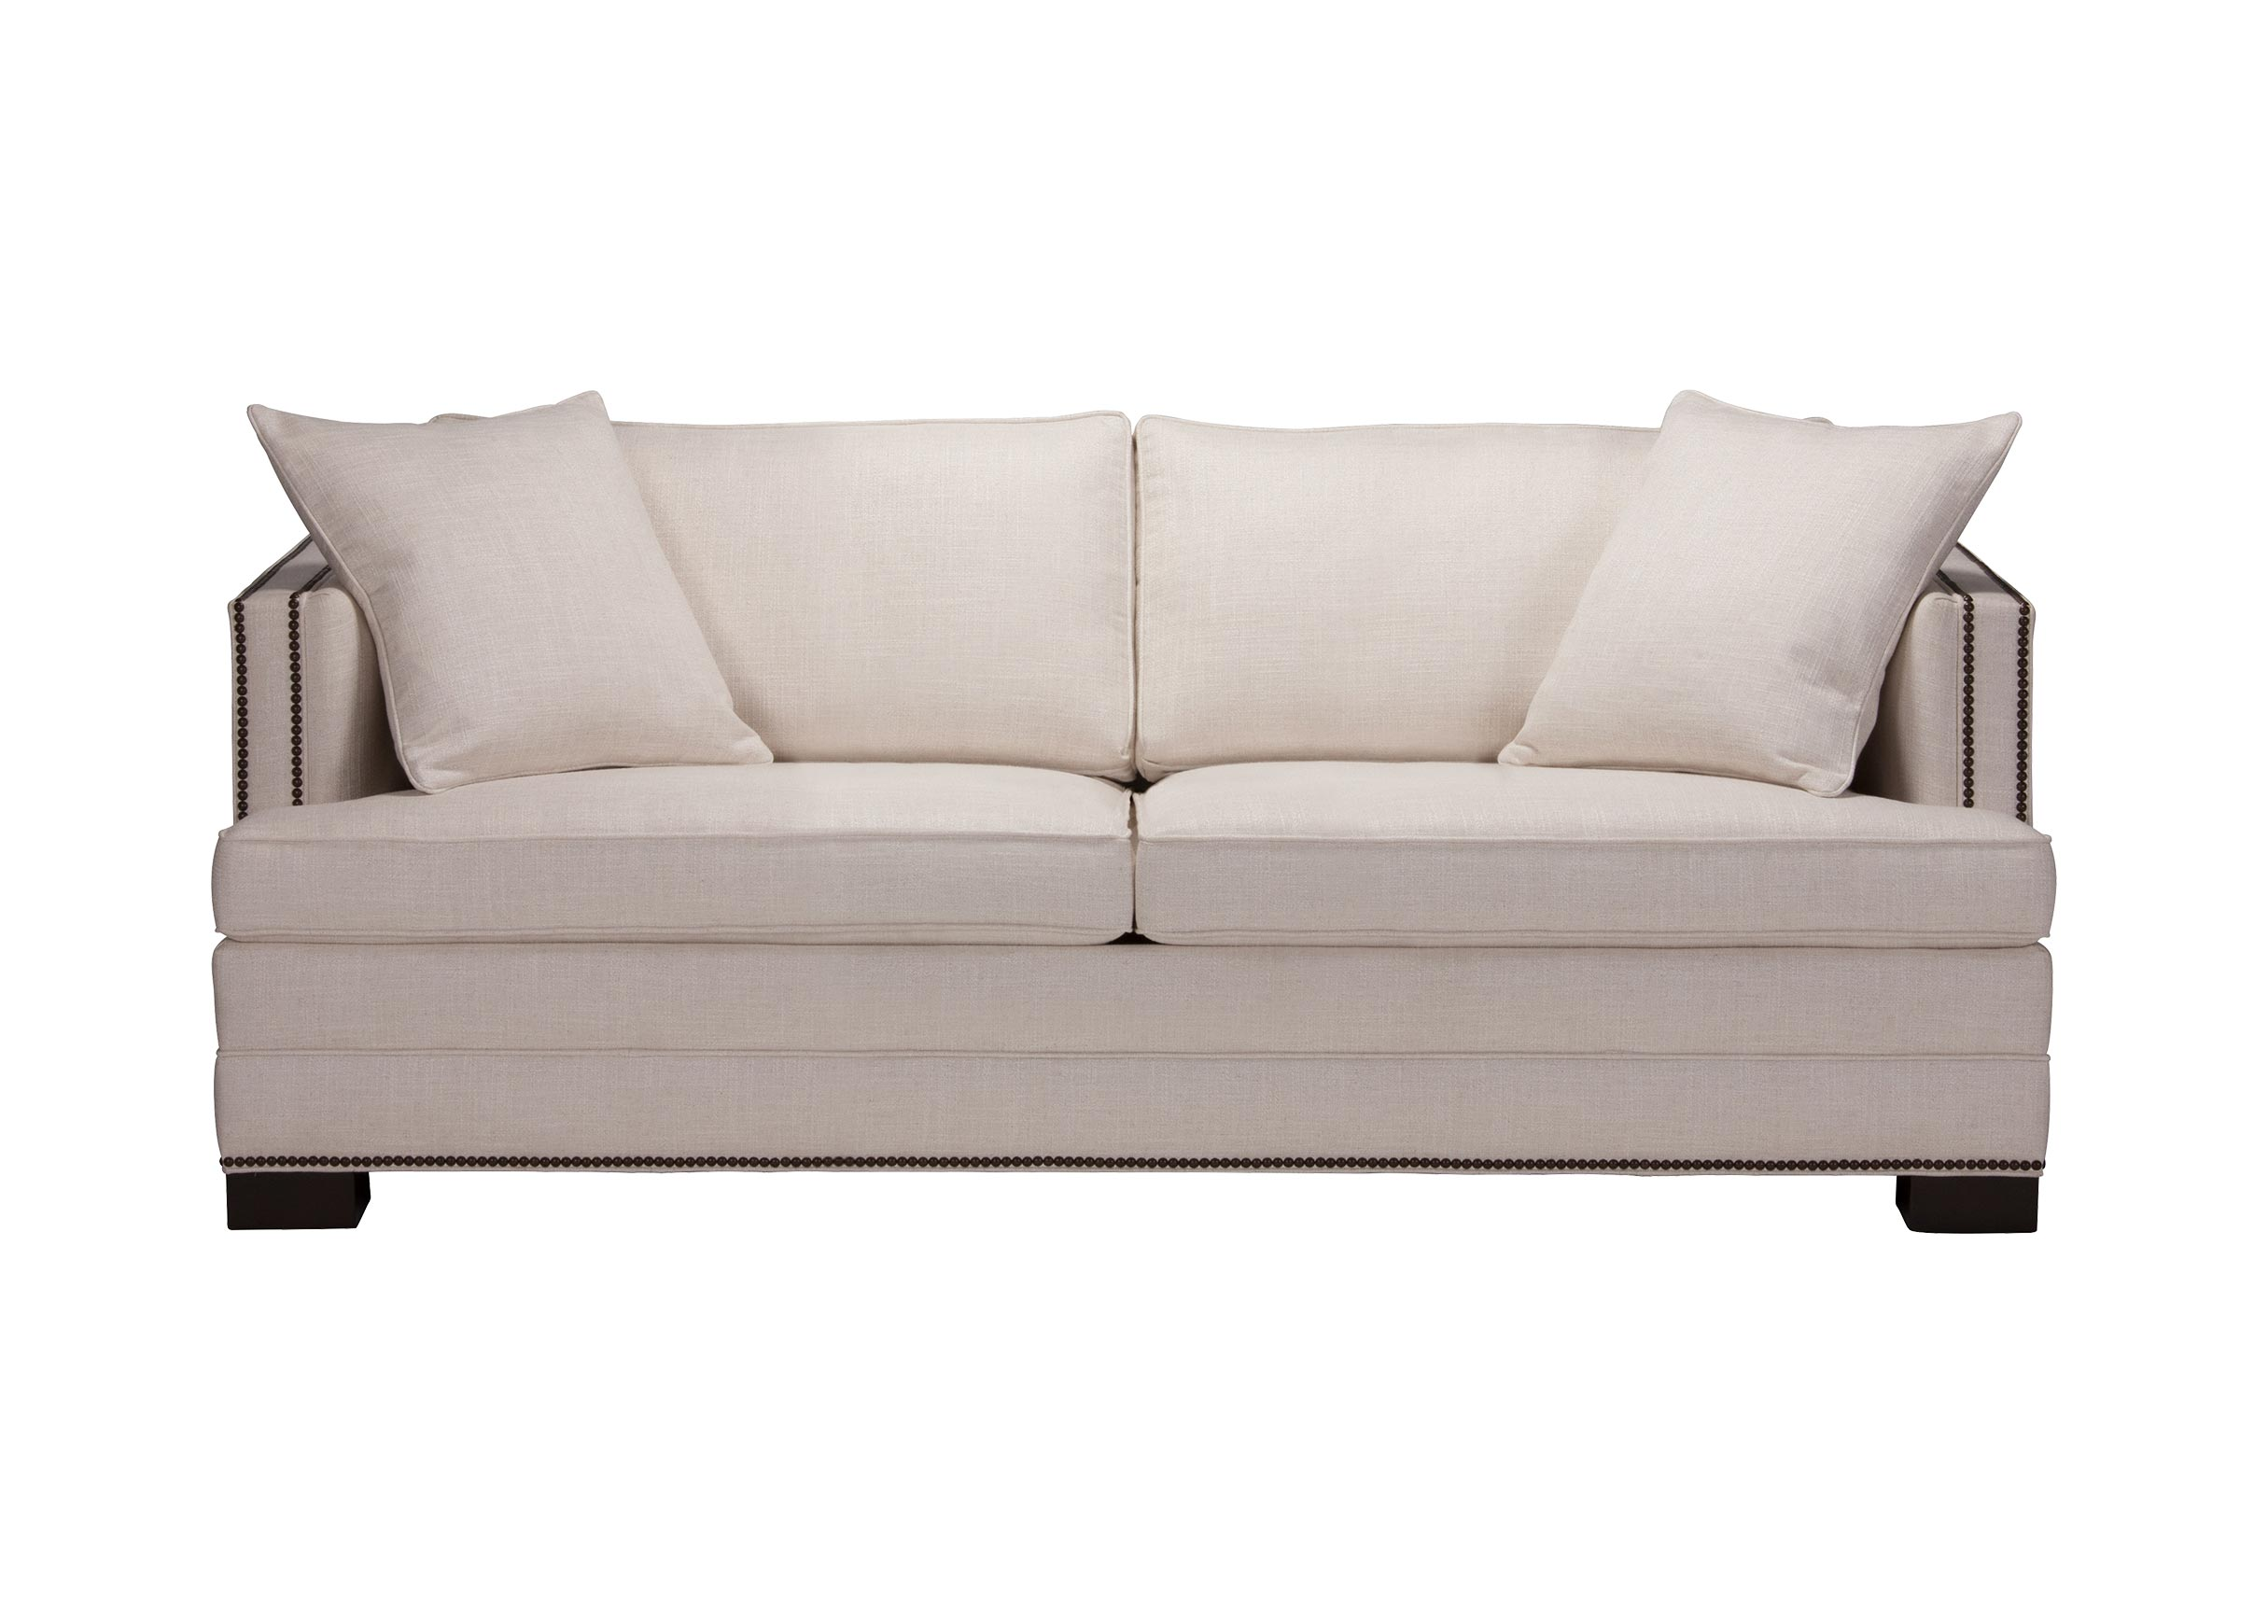 Sleeper Sofa Quick Delivery Astor Shelter Arm Sofa Custom Quick Ship Ethan Allen